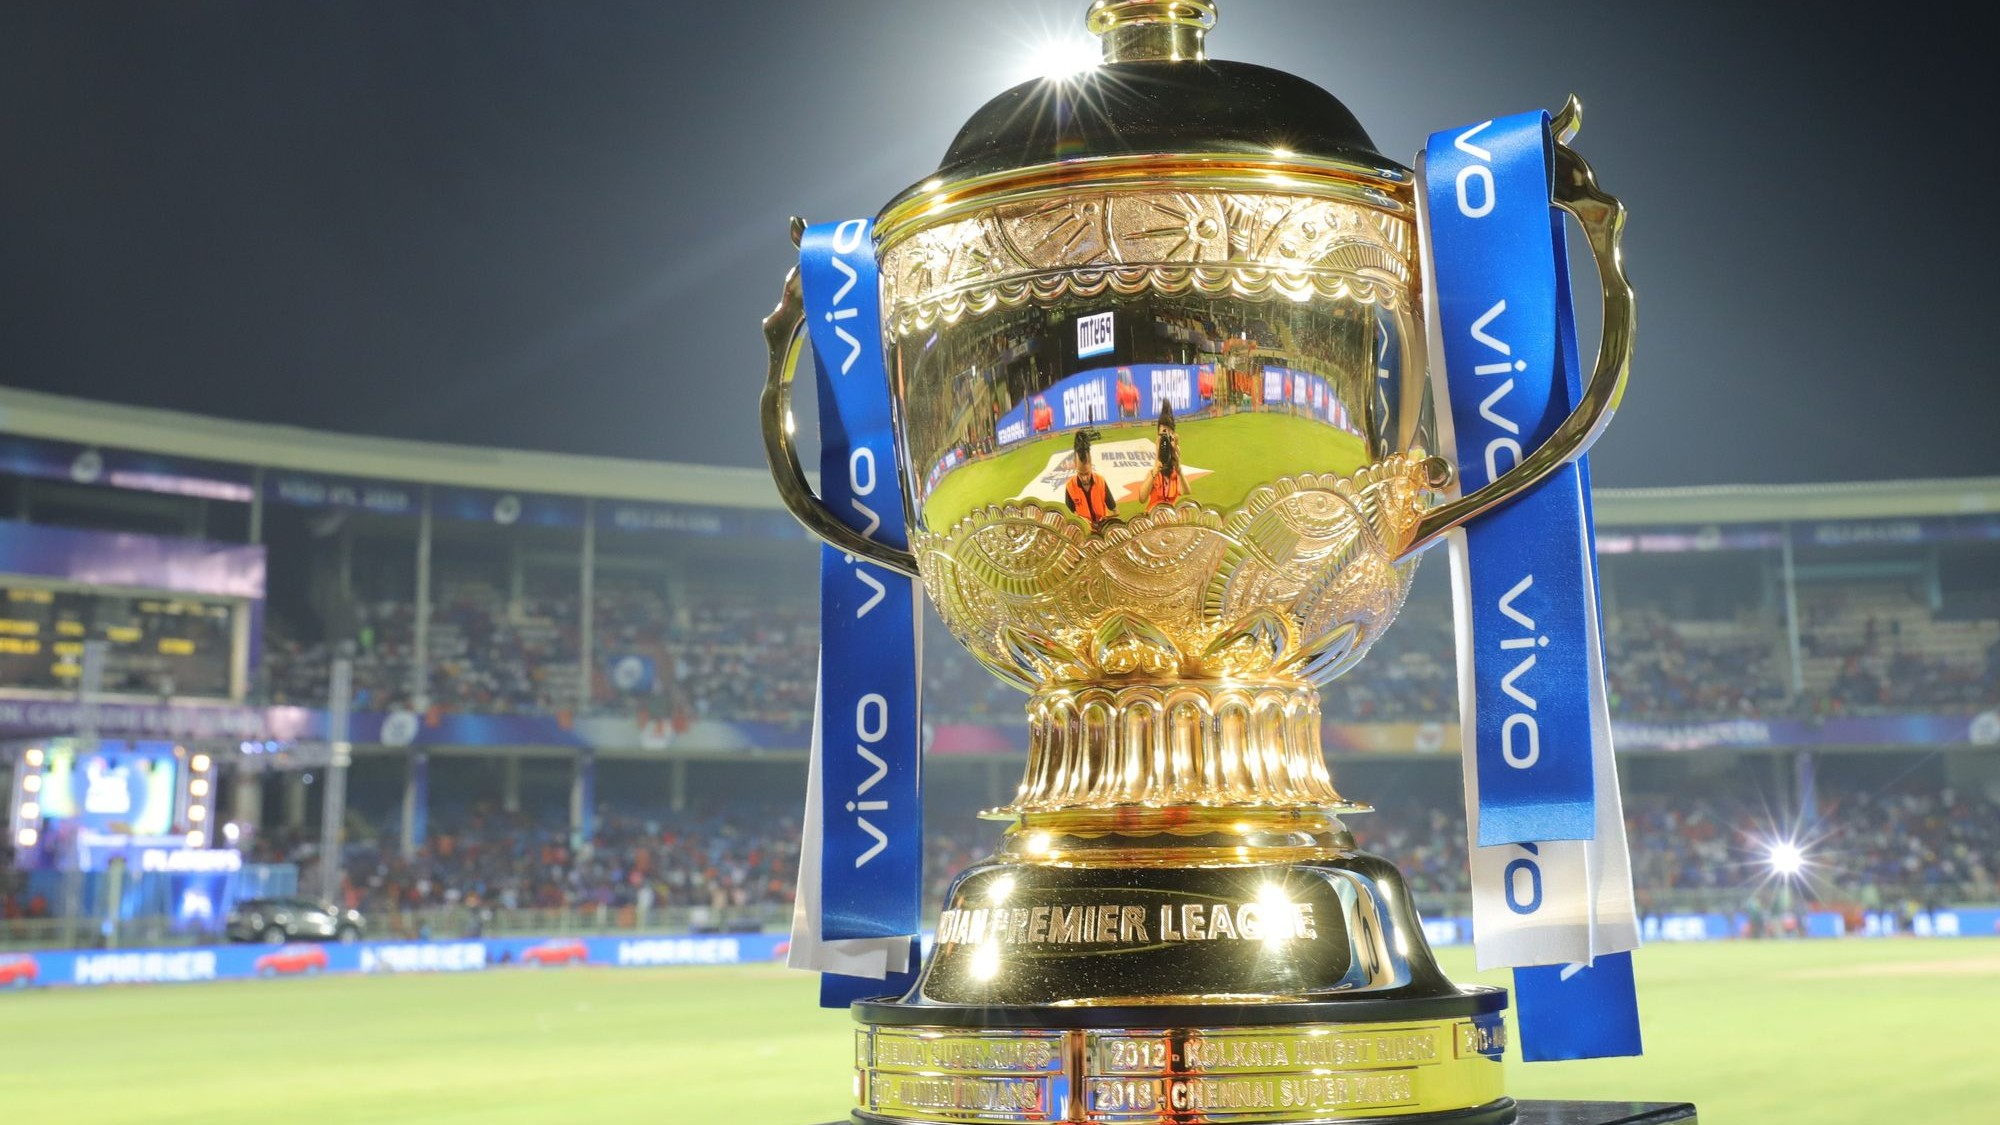 IPL 2020 will be a full-fledged tournament; schedule to be out in 10 days: IPL chairman Brijesh Patel